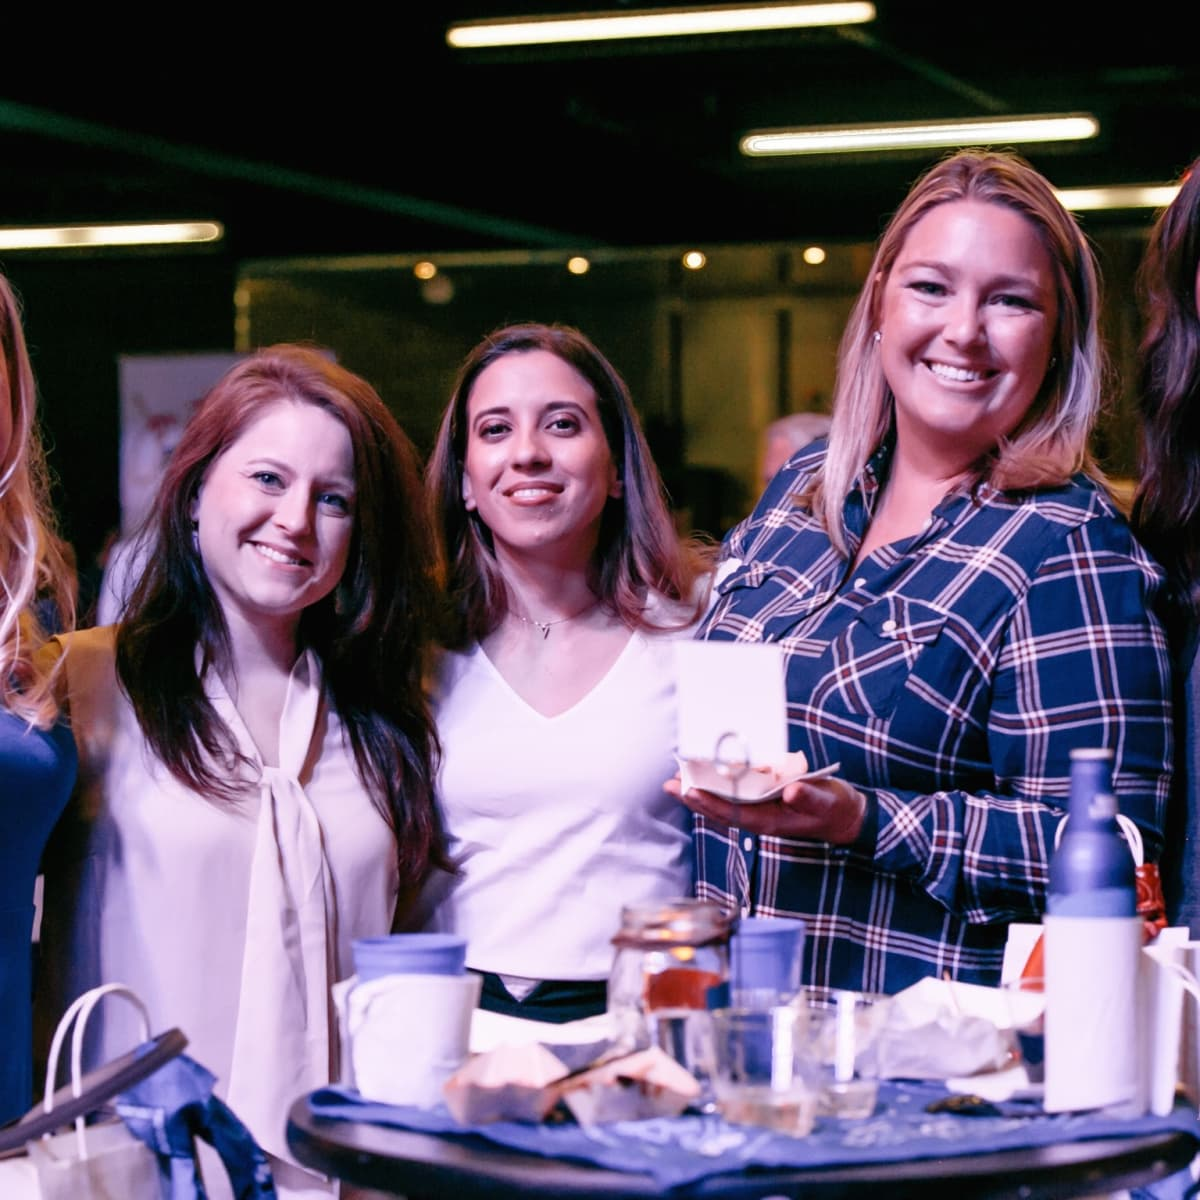 Camp for All Culinary Challenge Ellen Pennington, Meagan Messer, Nicole Till, Nikki Mitchell, and Erin Marzouki